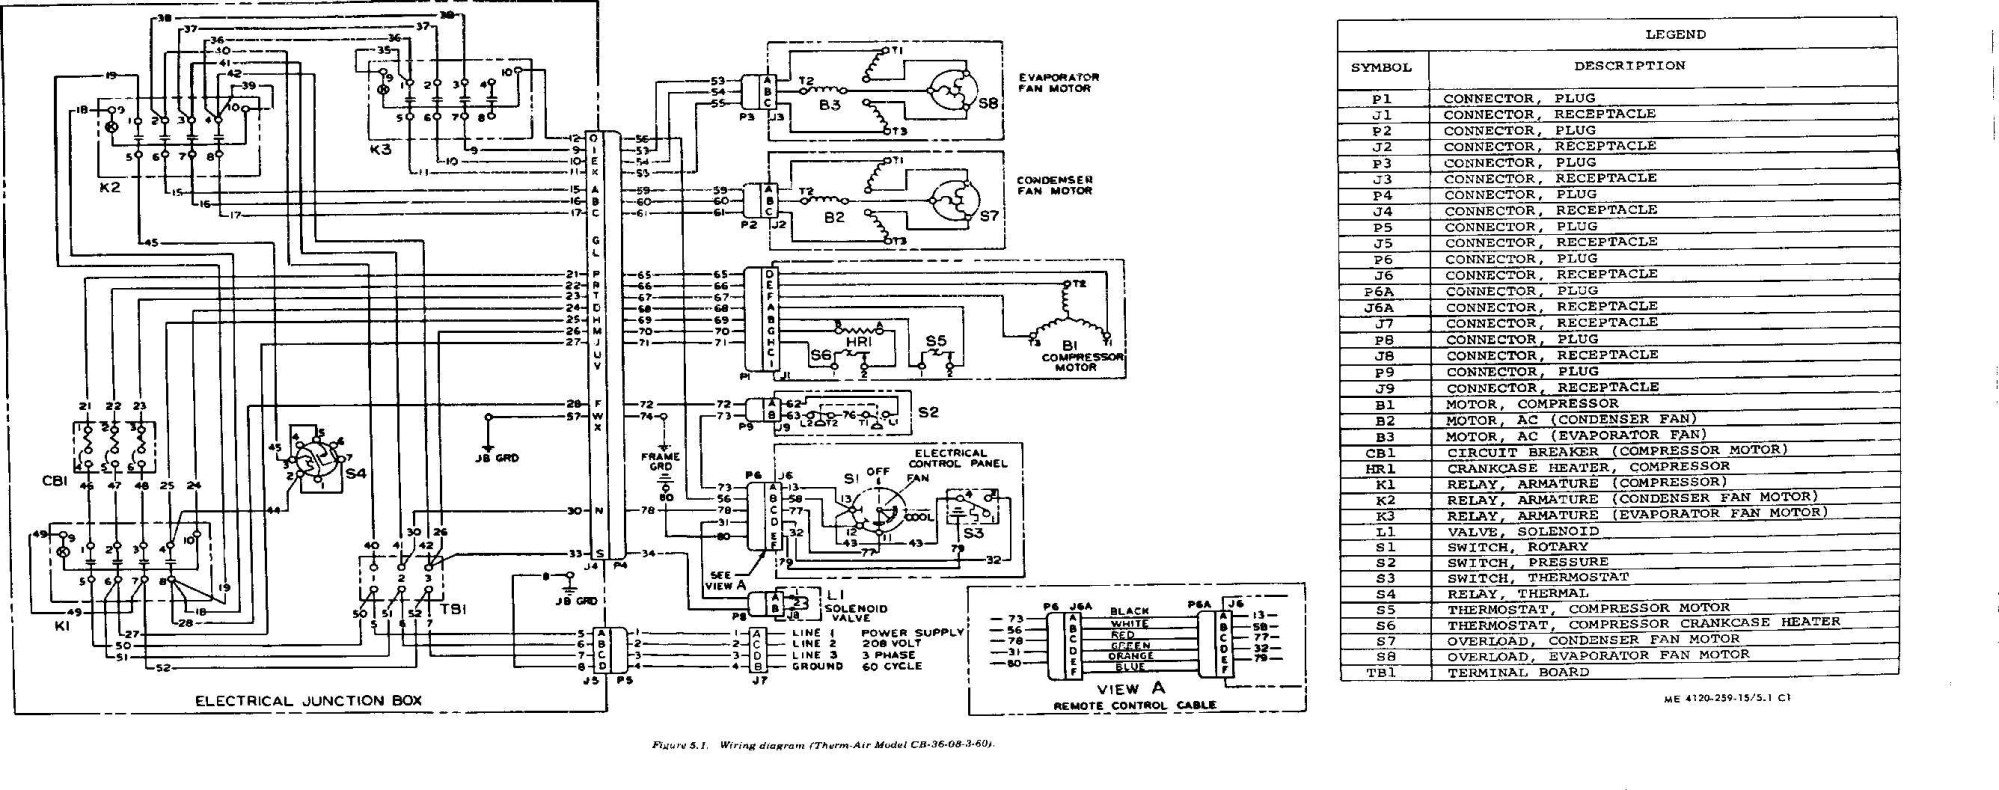 hight resolution of aaon wiring diagrams data schematic diagram aaon wiring diagrams aaon wiring diagrams